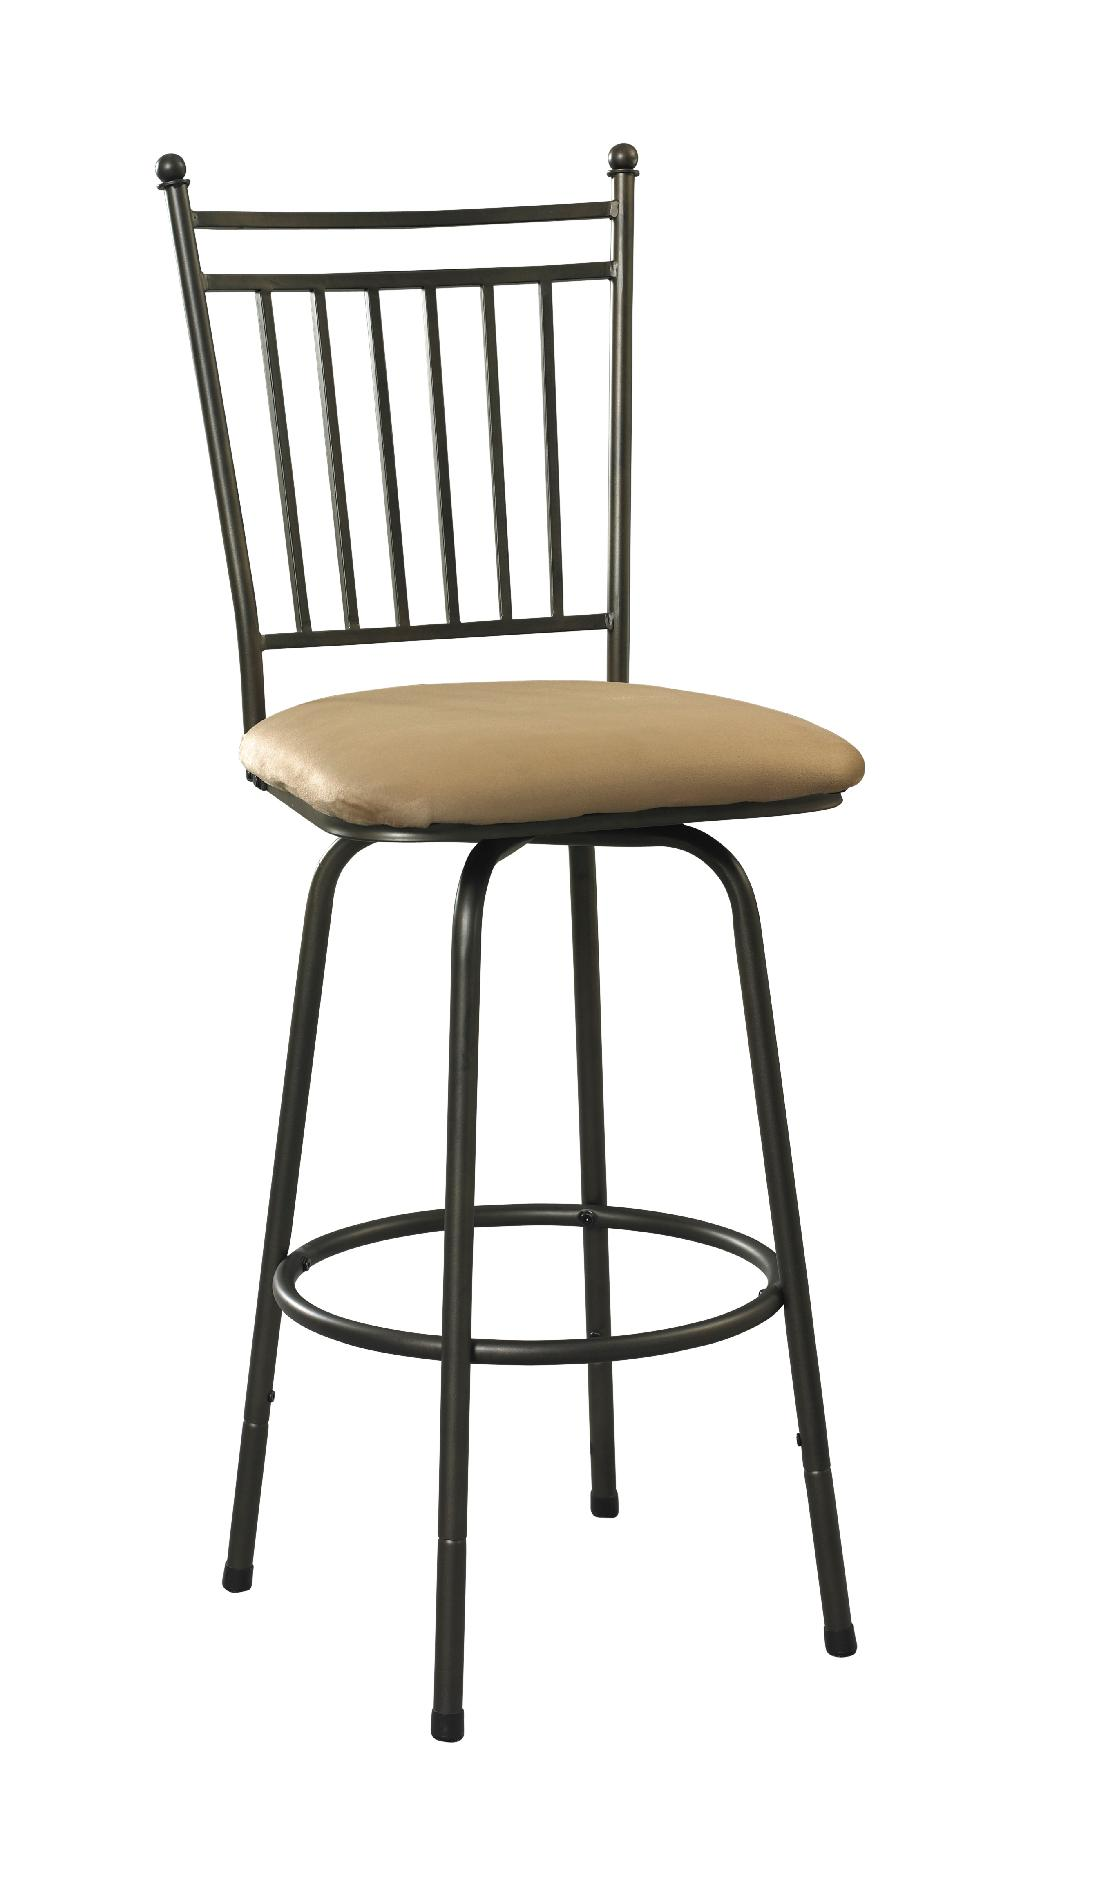 Linon Set of 3 Swivel Barstools